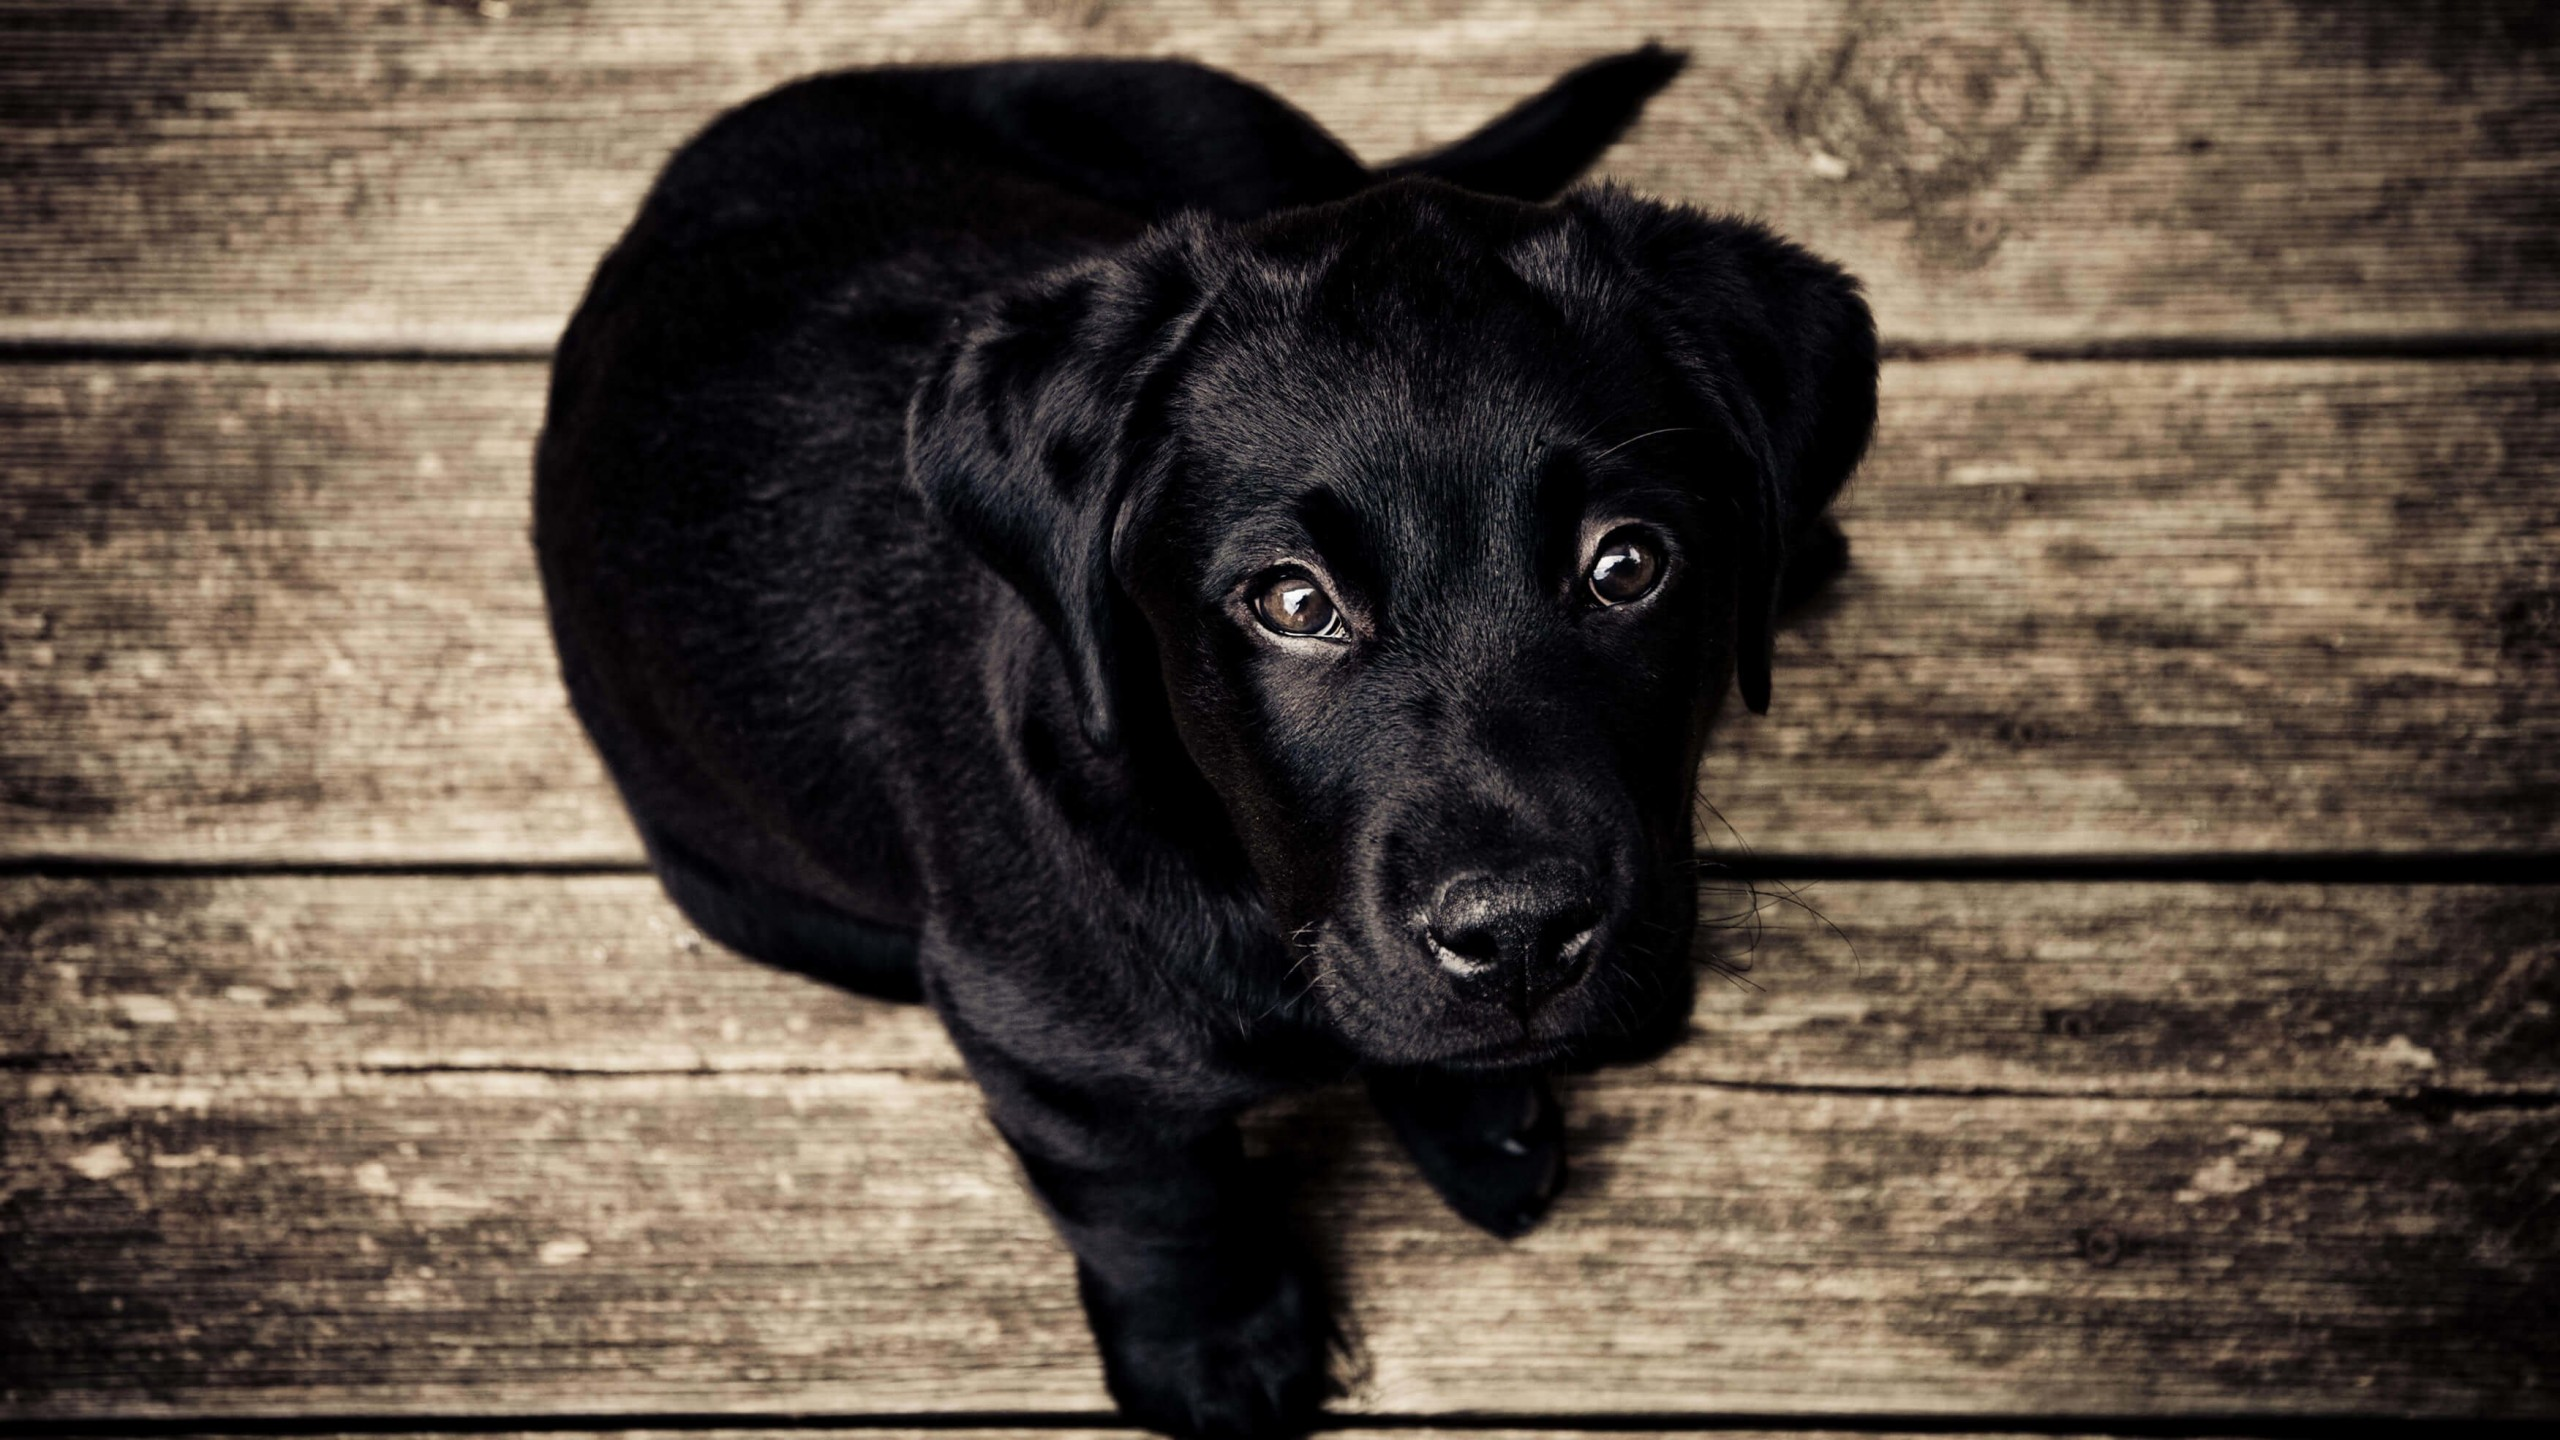 Black Lab Puppy Wallpaper for Social Media YouTube Channel Art